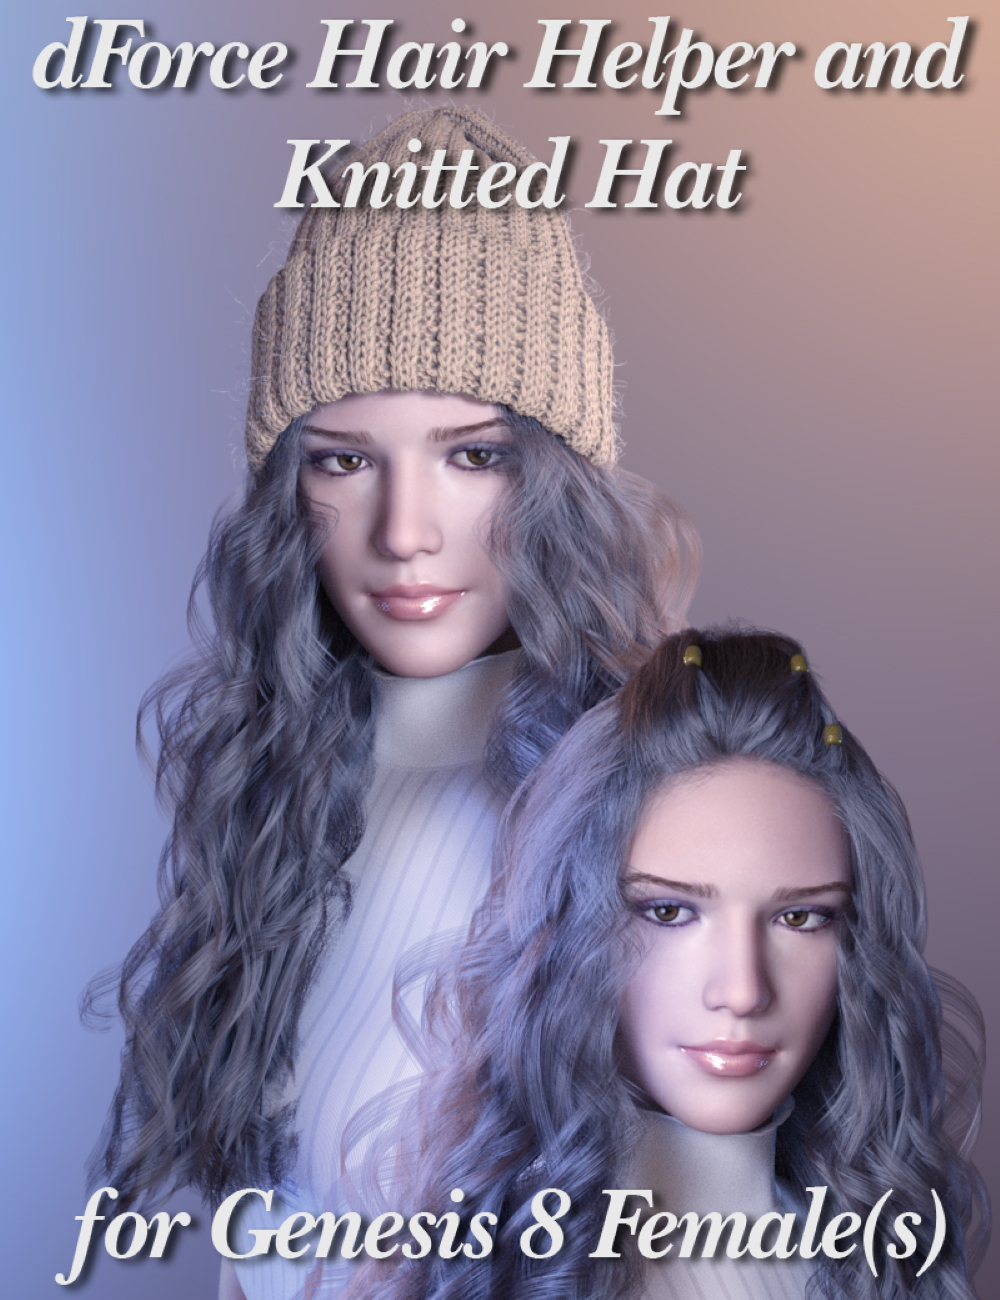 dForce Hair Helper and Knitted Hat by: iWave, 3D Models by Daz 3D